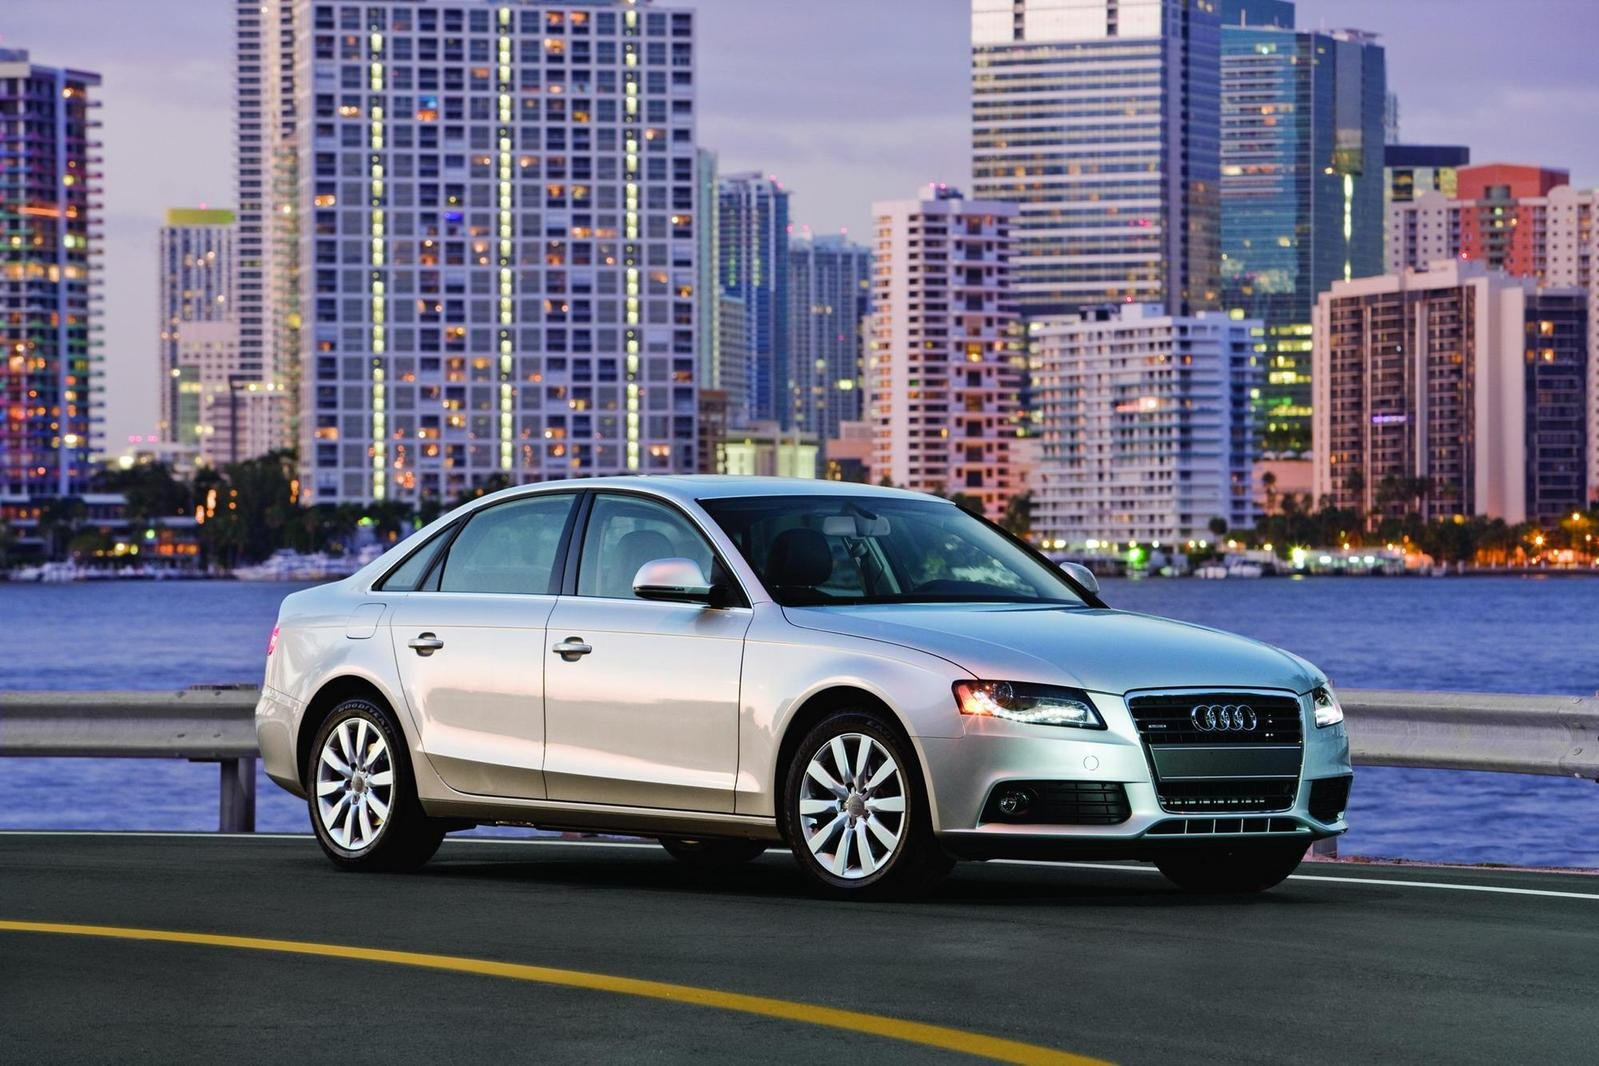 Audi A A Q Prices Announced News Top Speed - Audi car 2010